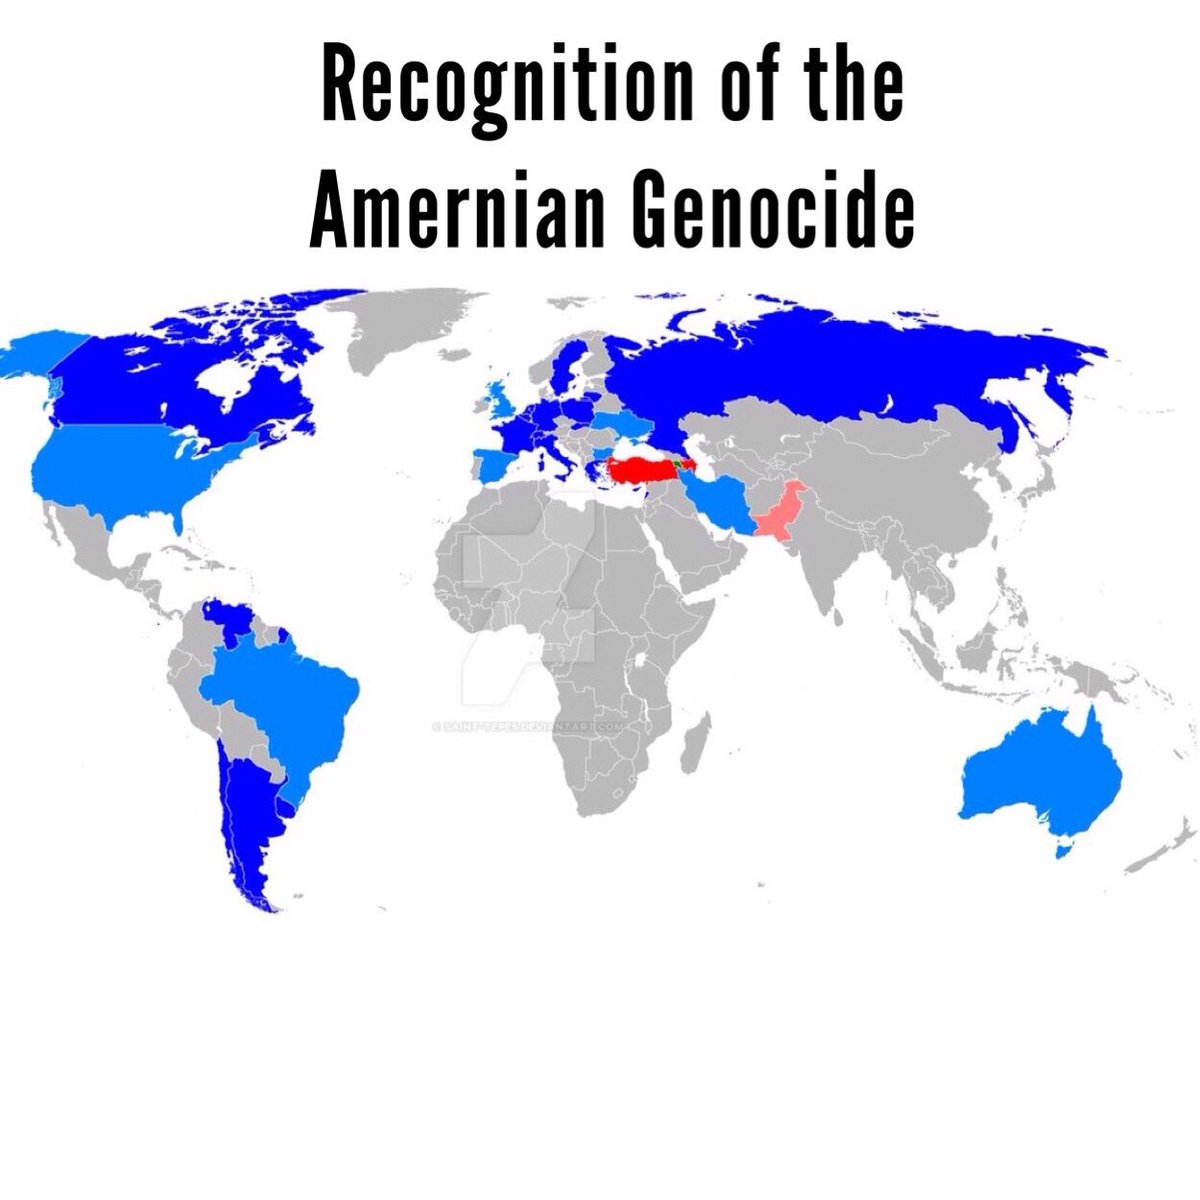 Fan Maps On Twitter Recognition Of The Armenian Genocide Source